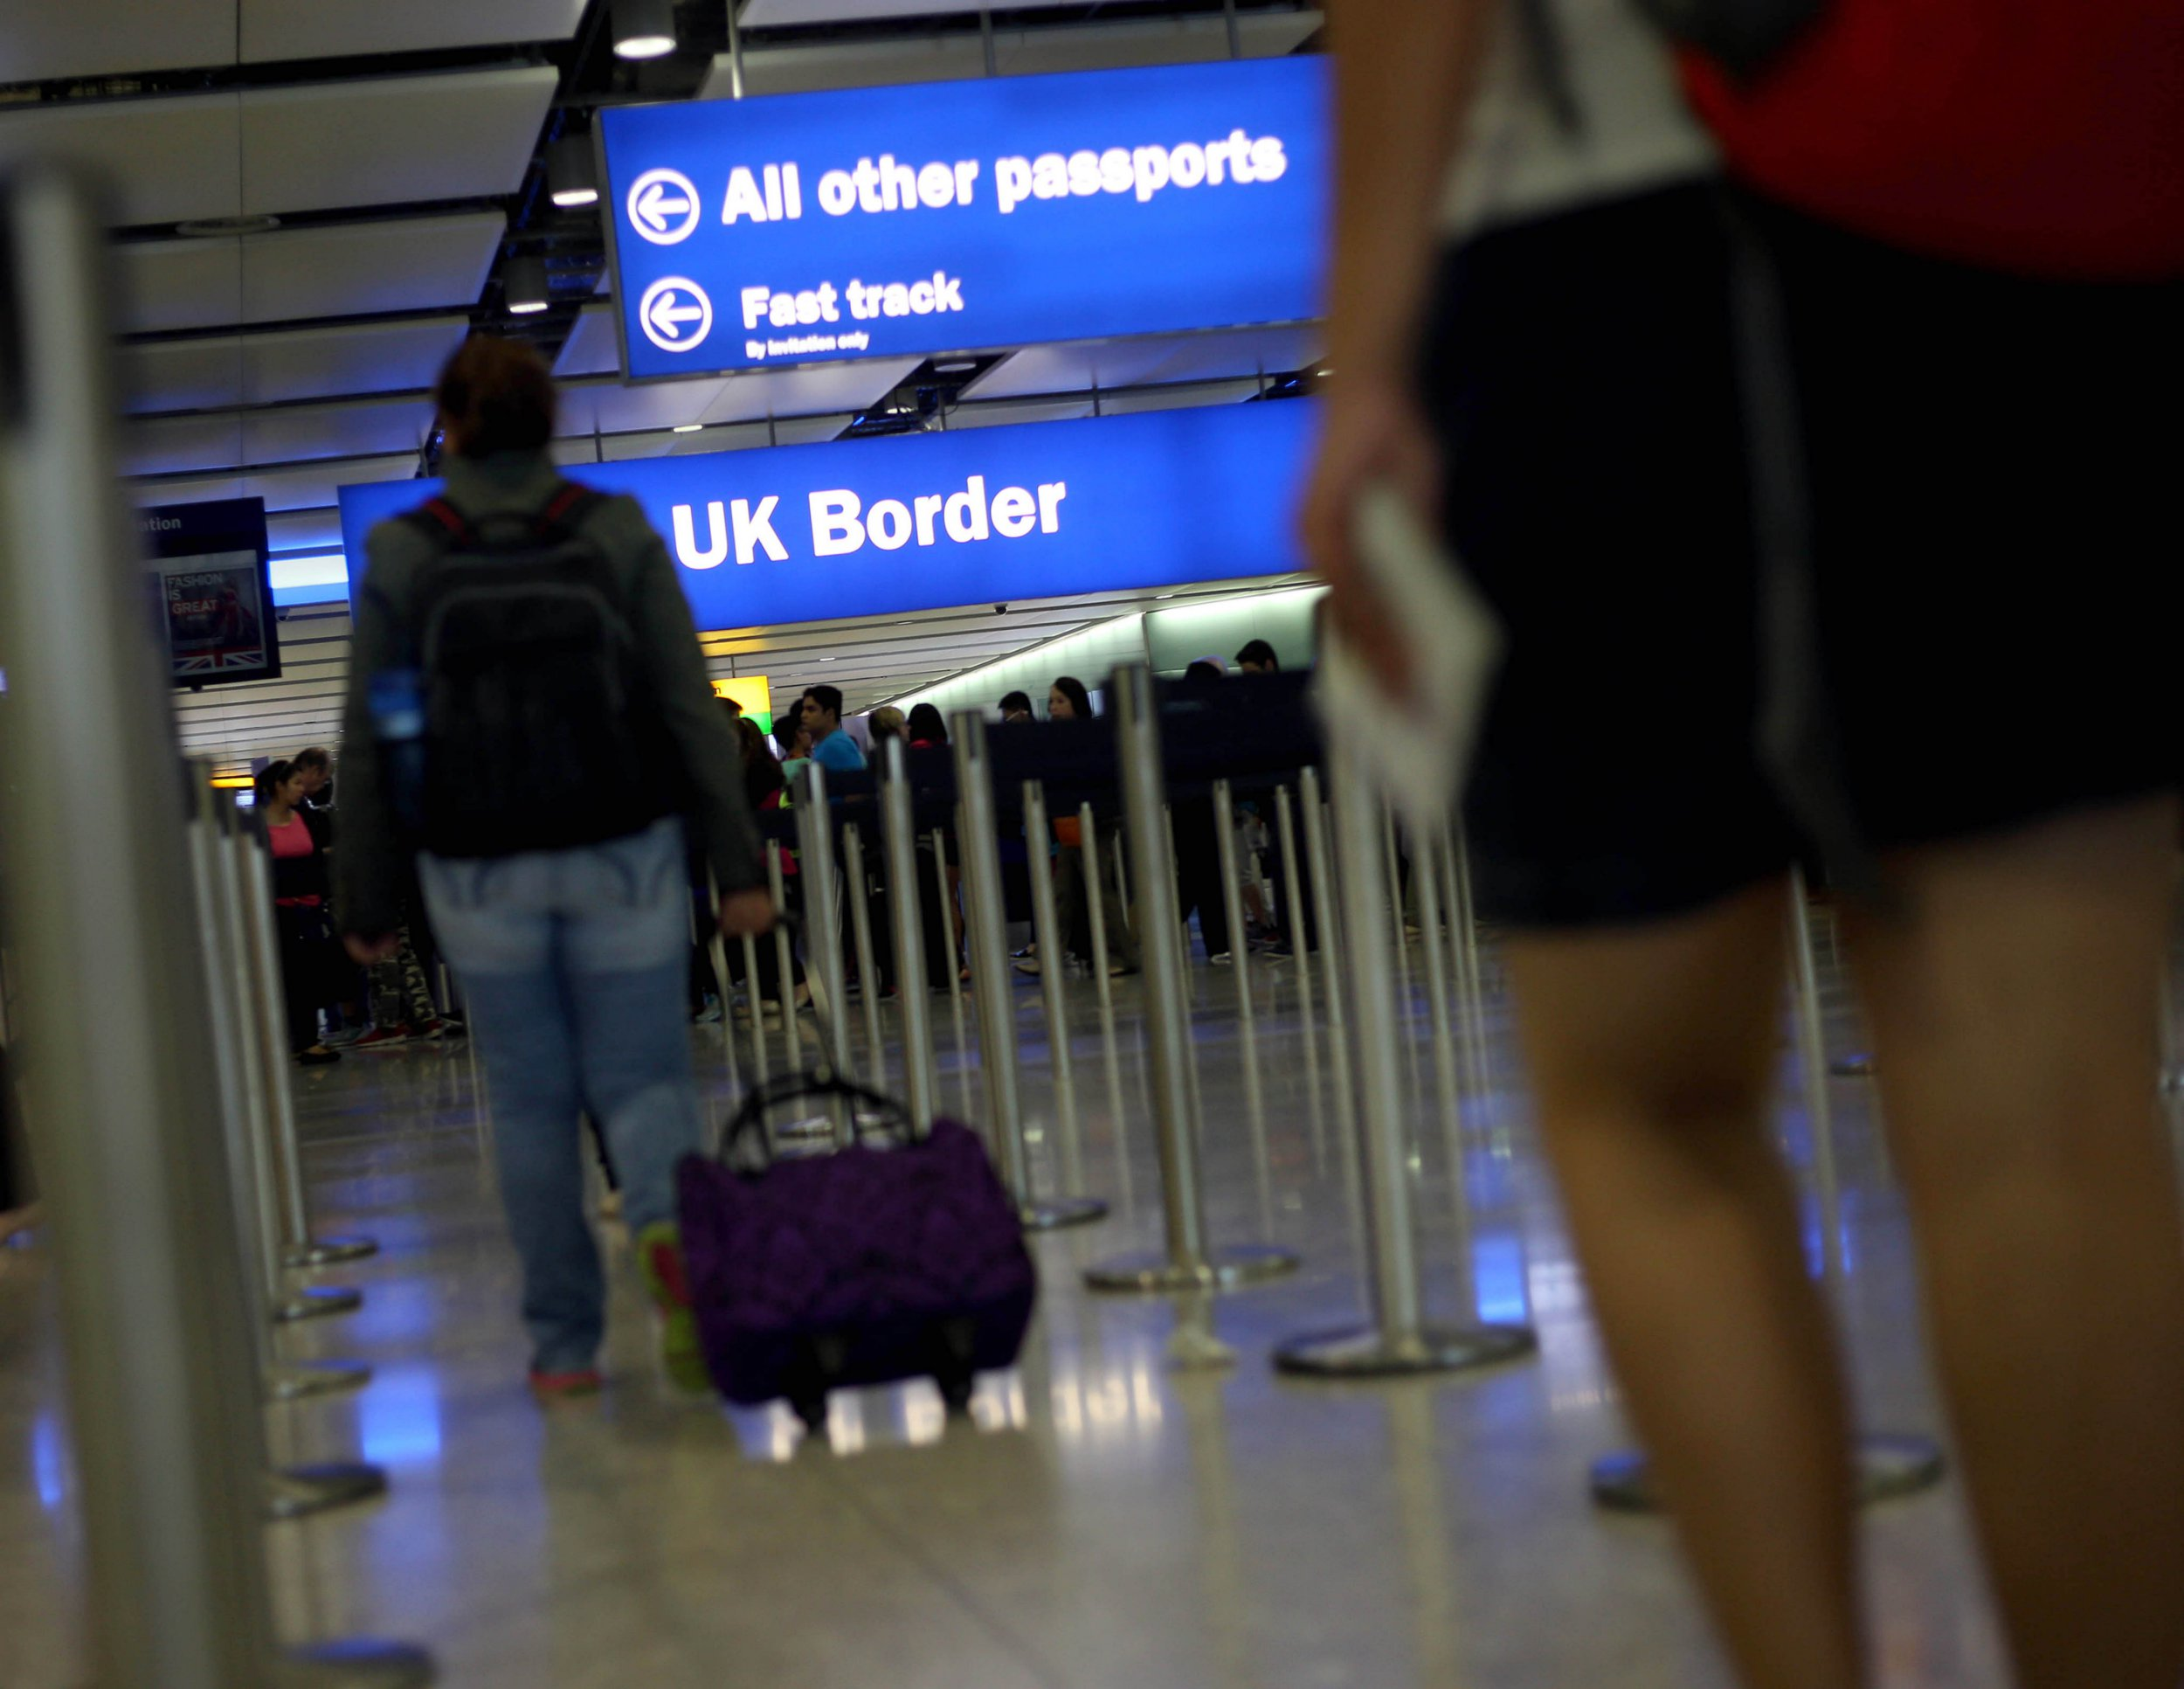 Experts say the number of illegal immigrants could go up after the UK leaves the EU